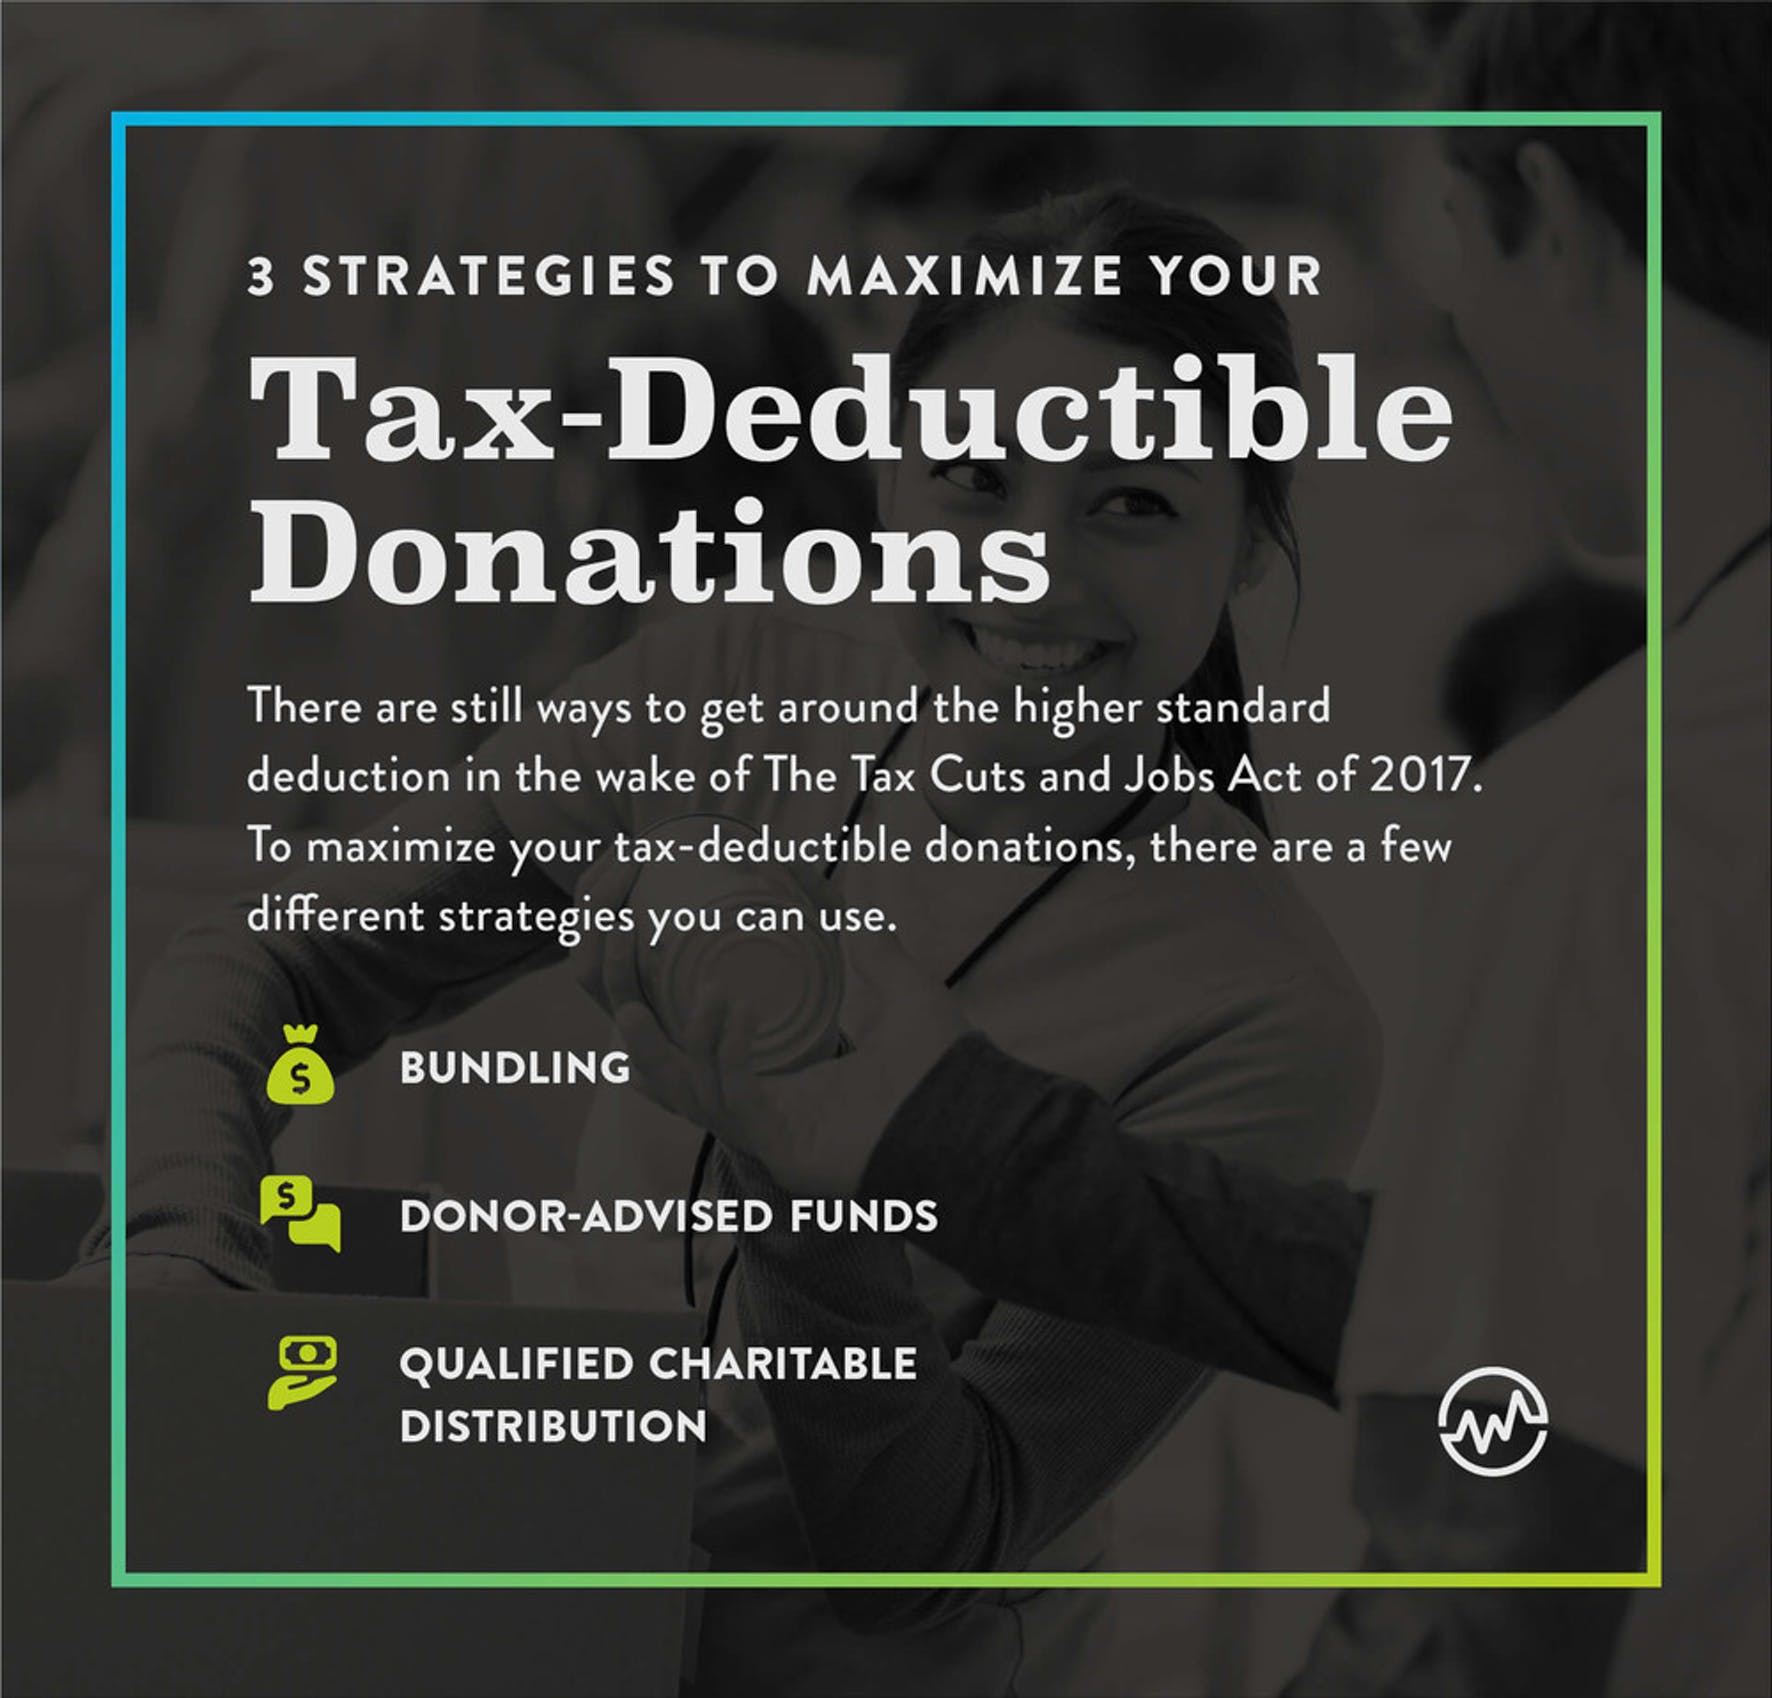 3 strategies to maximize your tax deductible donations